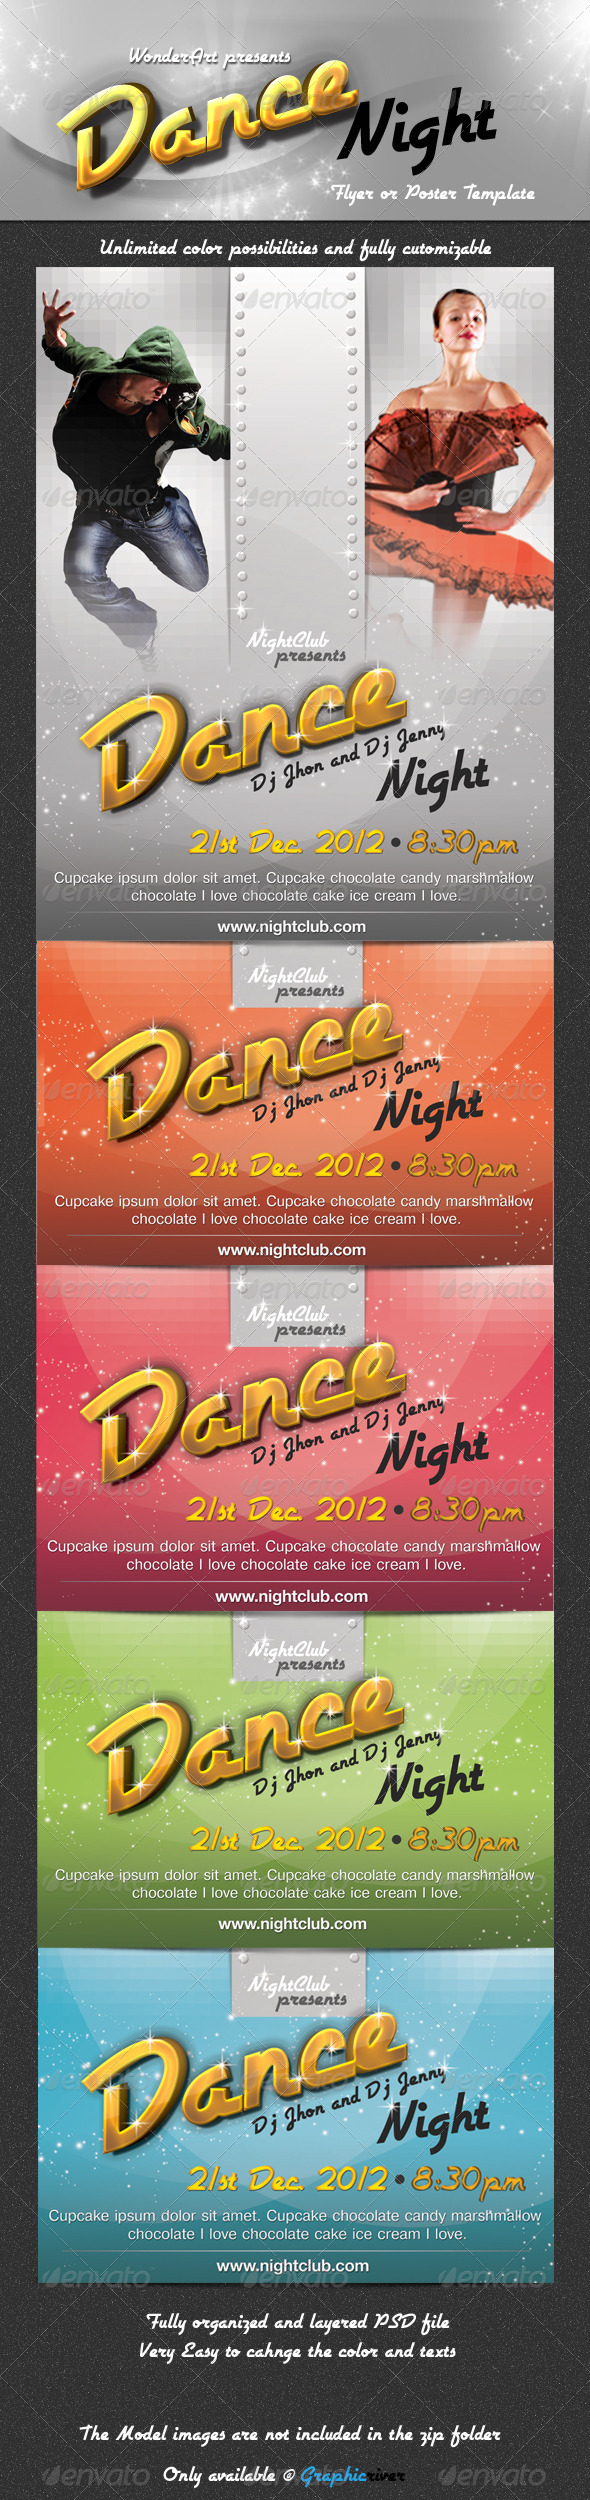 Dance Night Flyer/Poster Template - Clubs & Parties Events